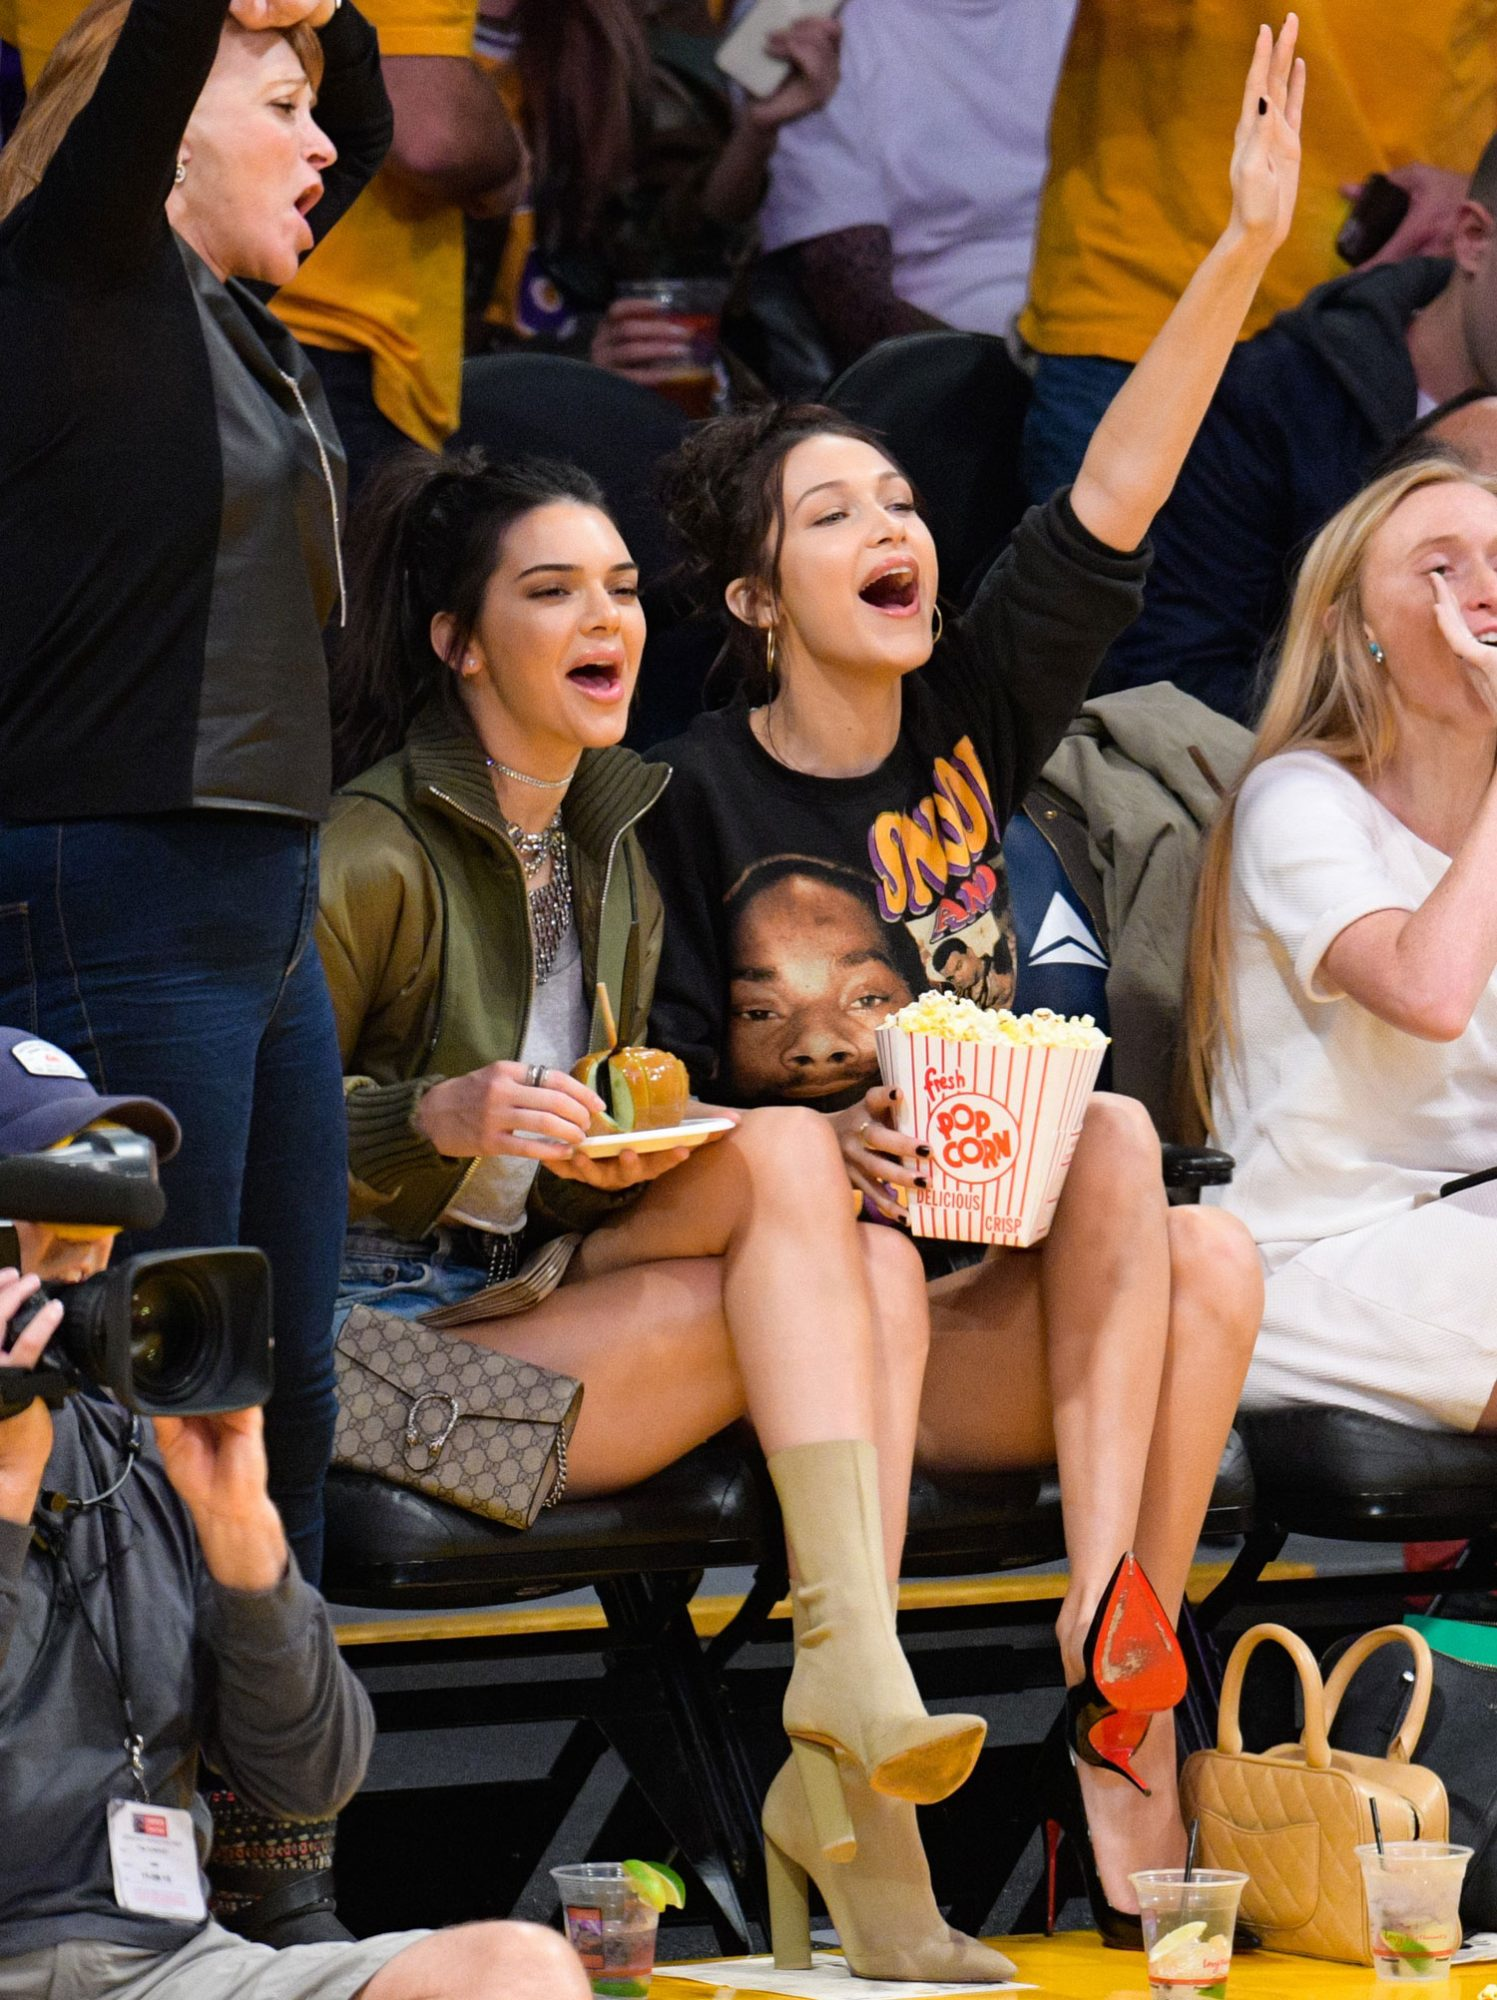 The model friendsknow how to makeeating a caramel apple and bucket of popcorn look chic while cheering on the Los Angeles Lakers at the Staples Center.